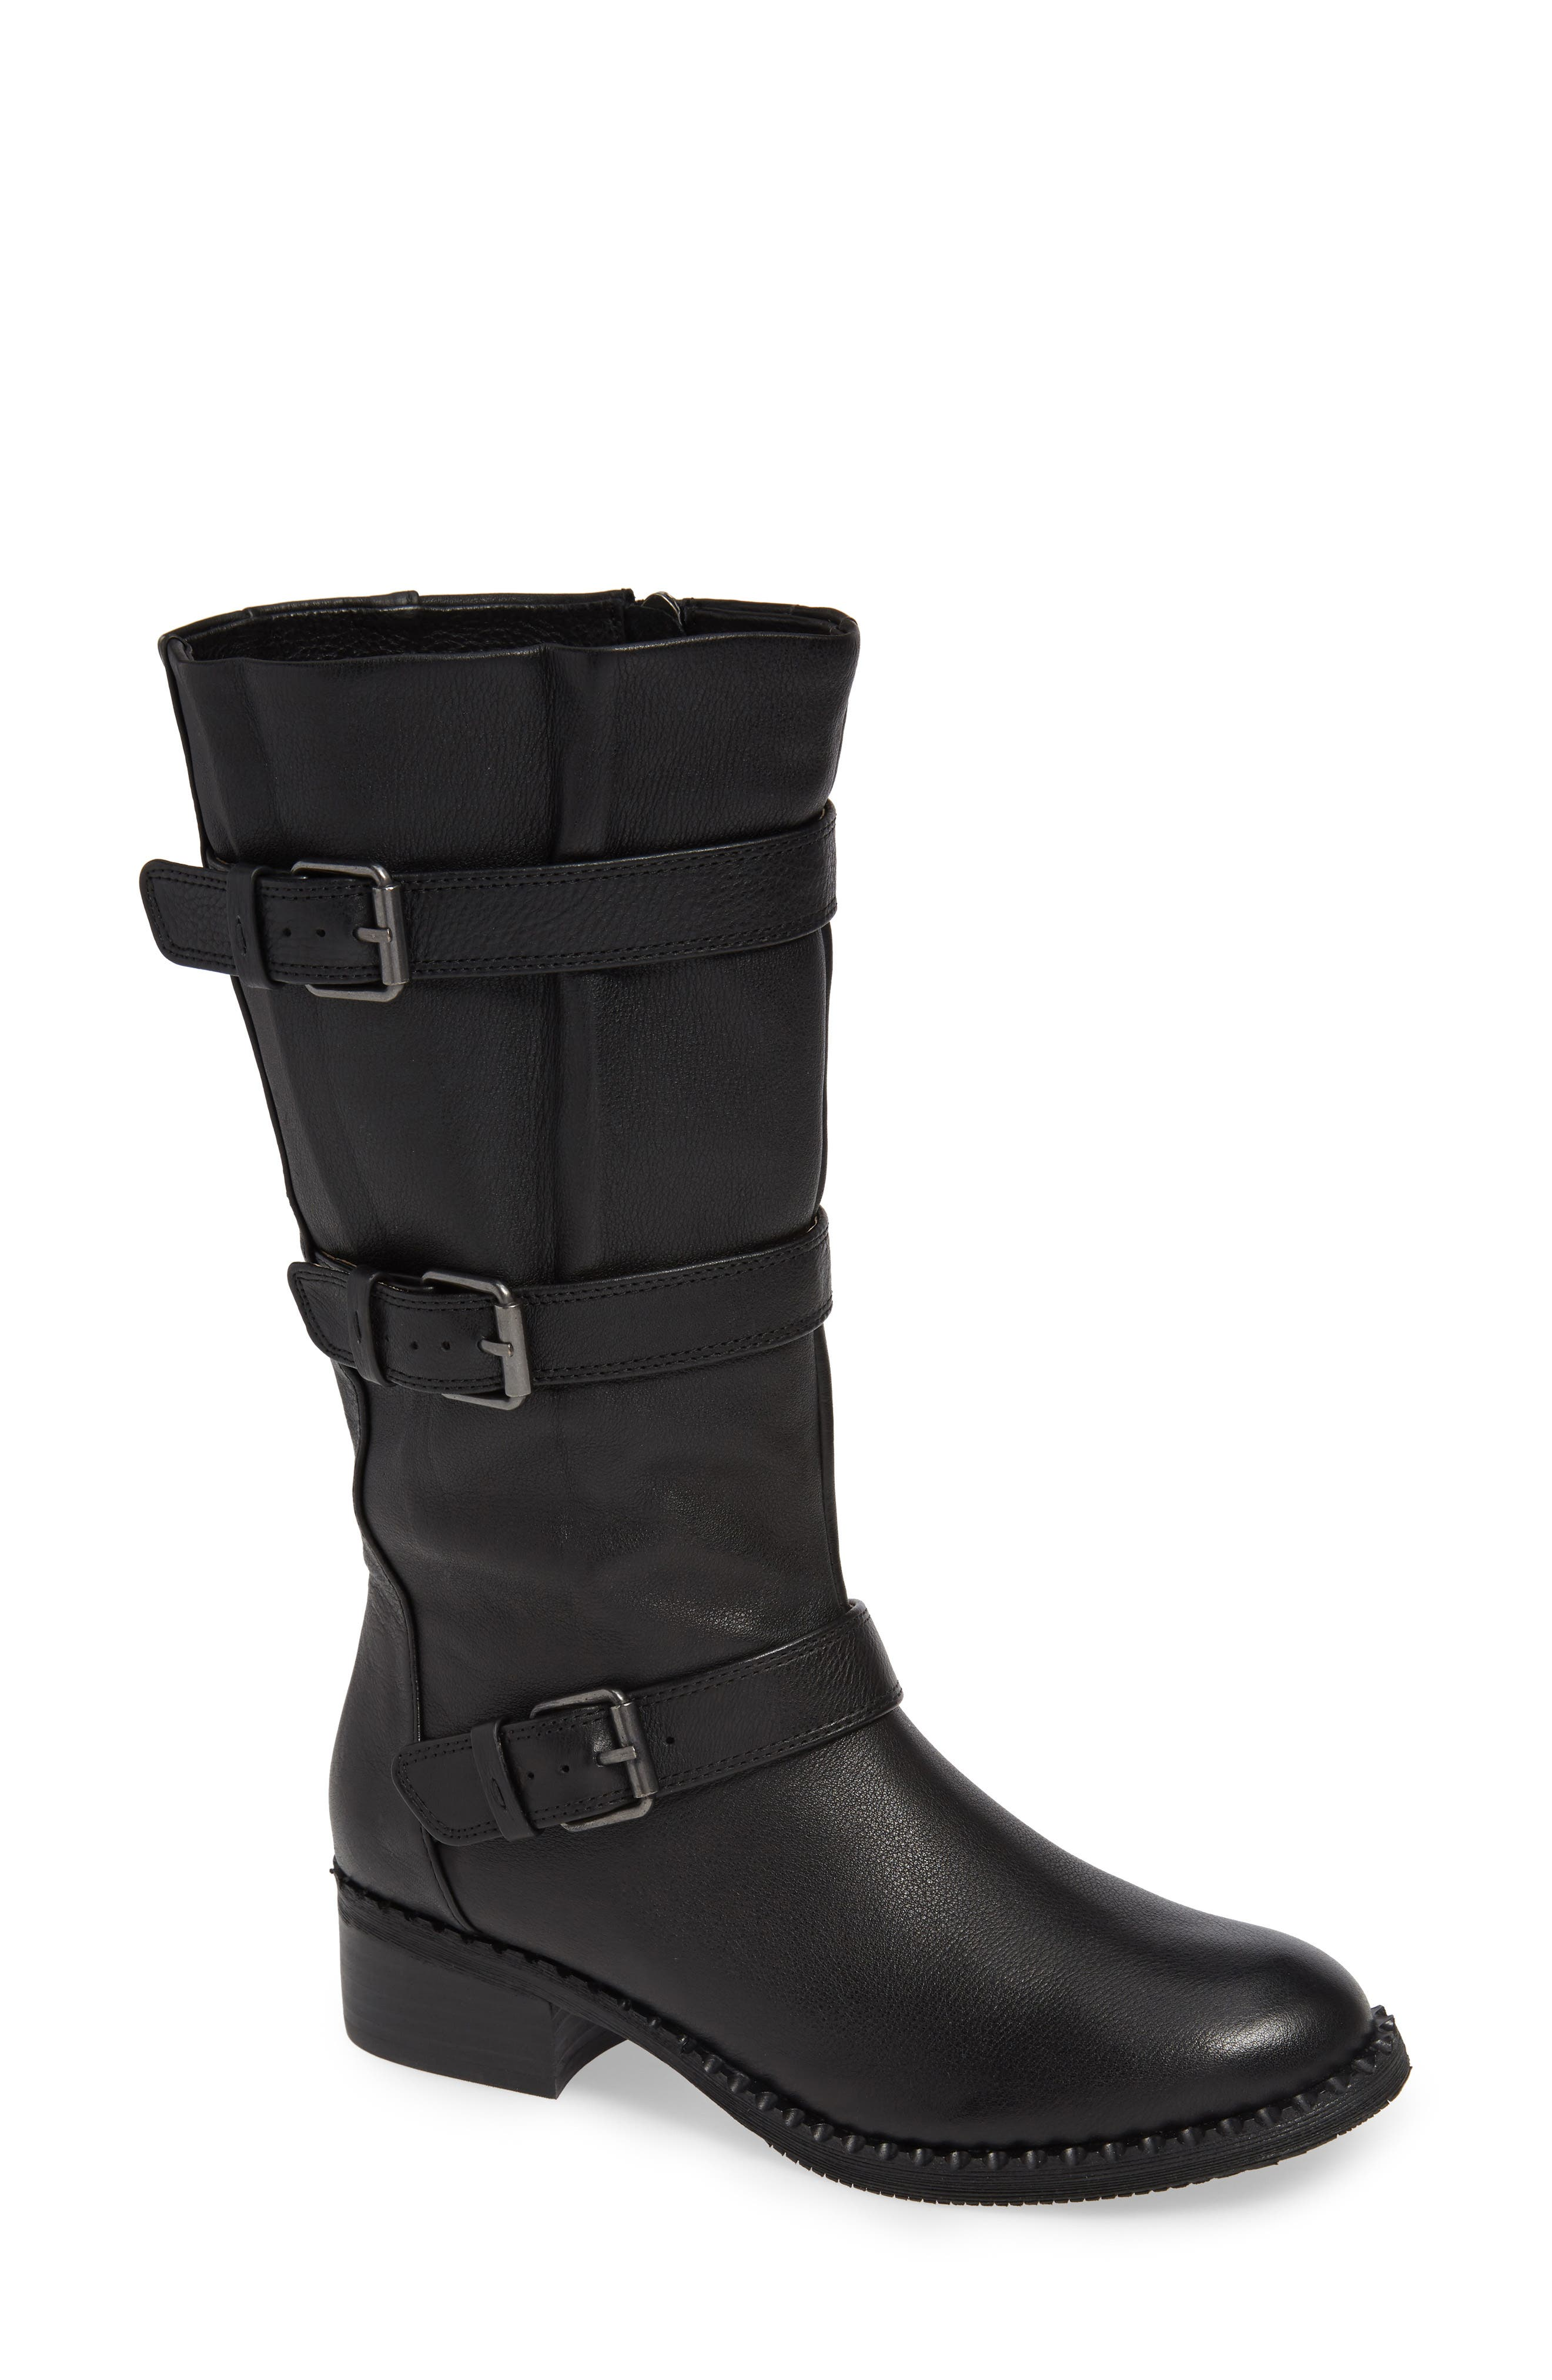 GENTLE SOULS BY KENNETH COLE Best 3-Buckle Boot, Main, color, 001